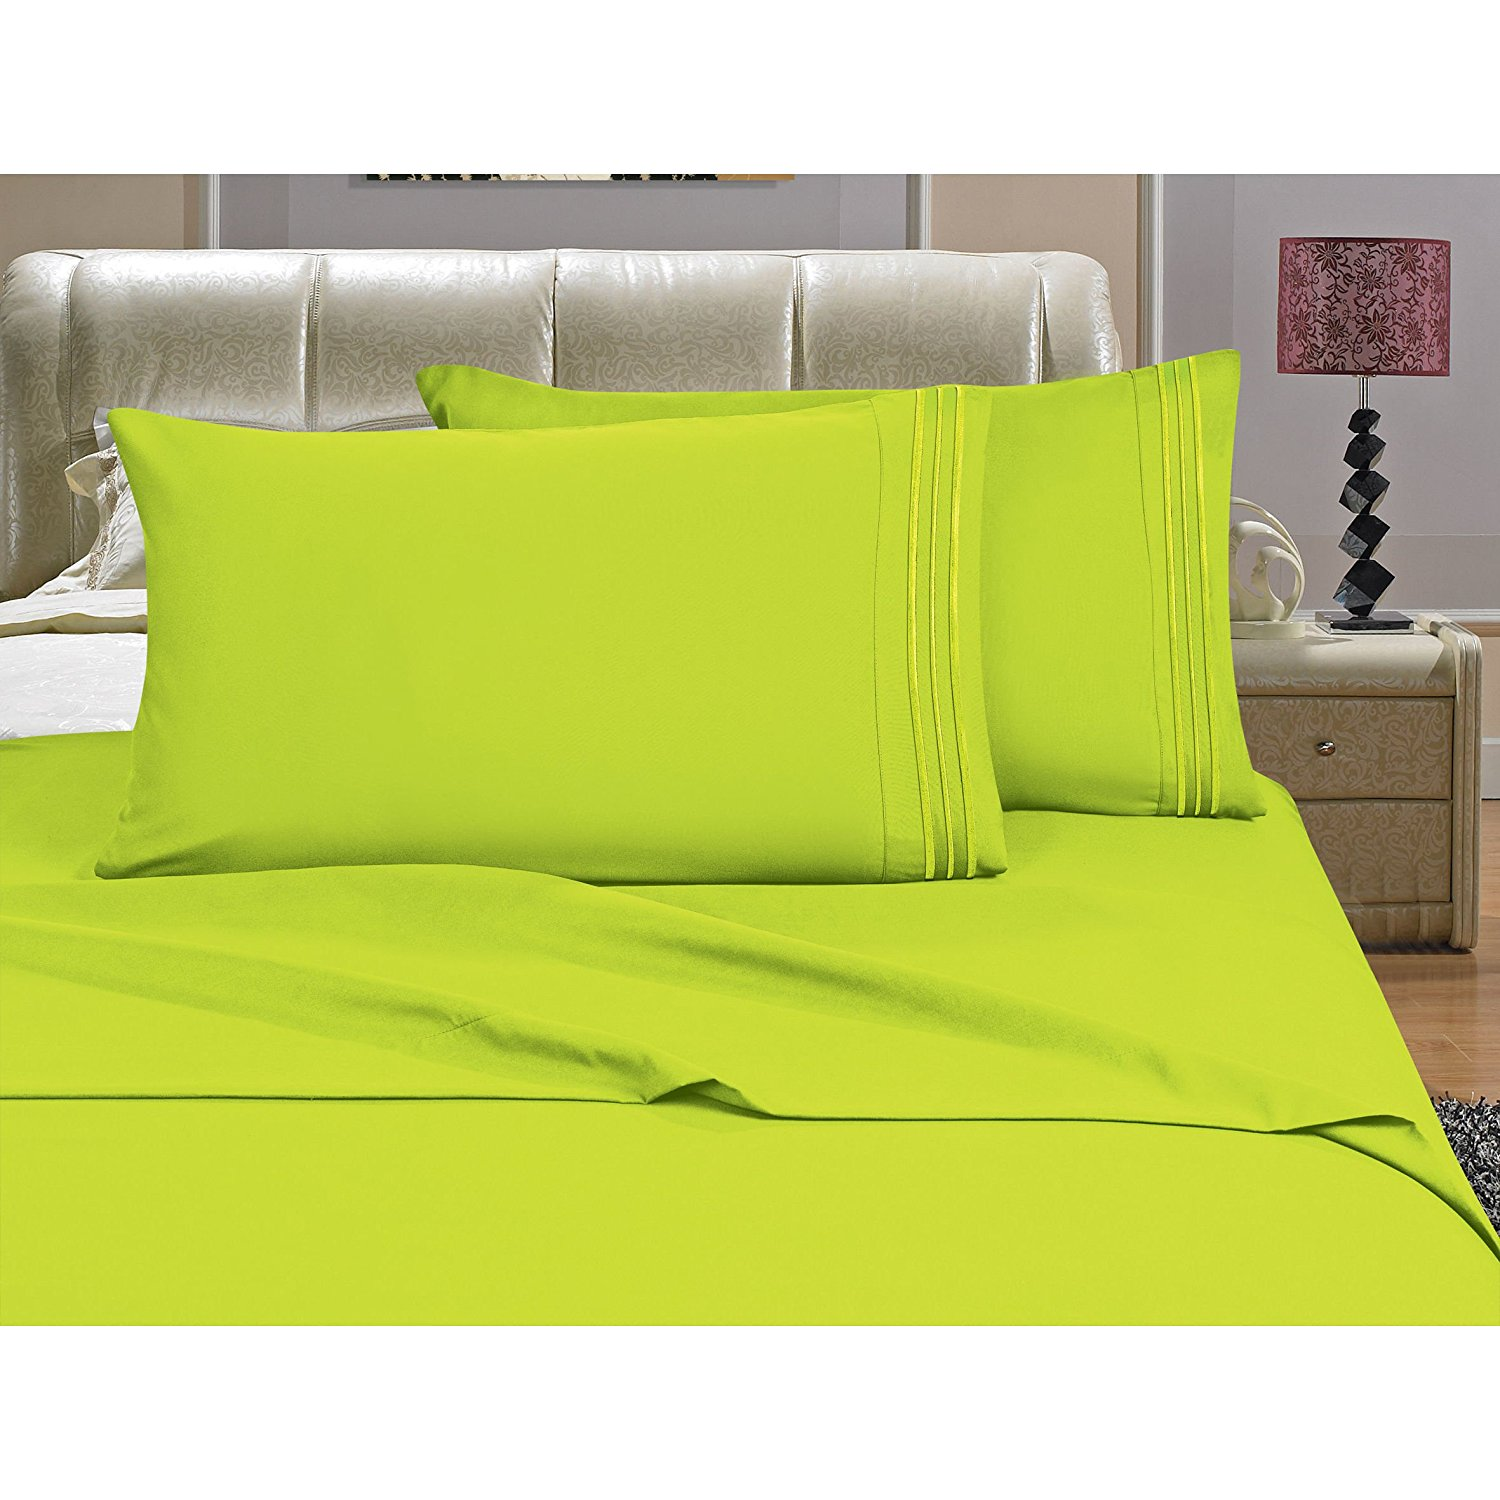 OSK 3 Piece Girls Lime Green Embroidered Stripe Sheet Twin Twin XL Set, Light Green Color Solid Pattern Design Kids Bedding, Luxurious Colorful Traditional Teen Themed, Polyester Microfiber